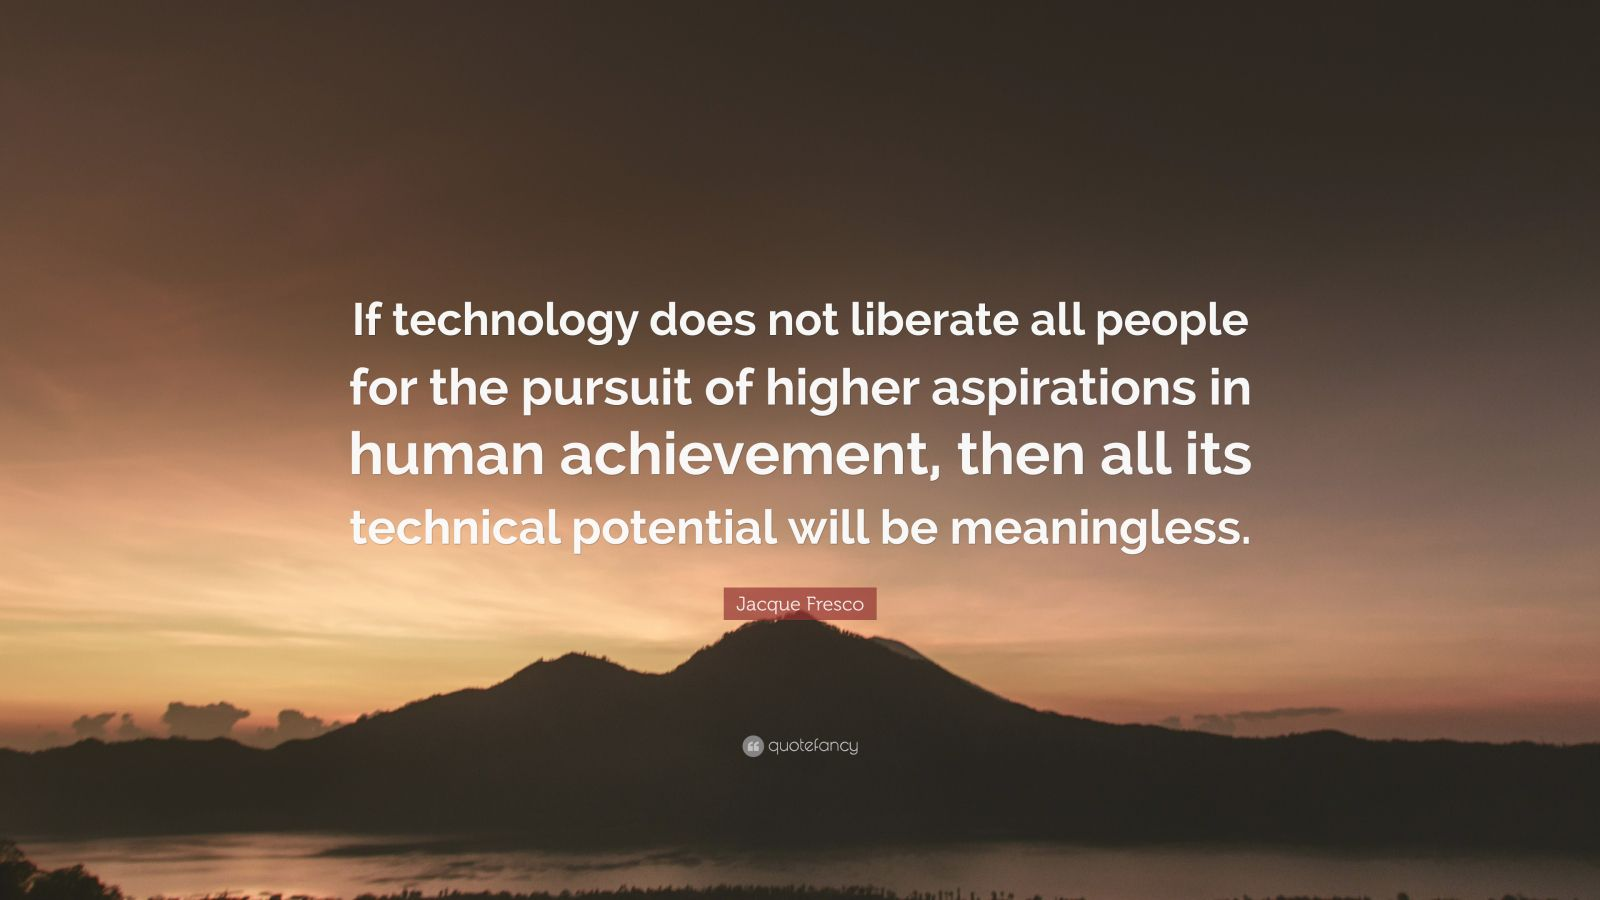 """Jacque Fresco Quote: """"If technology does not liberate all people for the pursuit of higher aspirations in human achievement, then all its technical potential will be meaningless."""""""